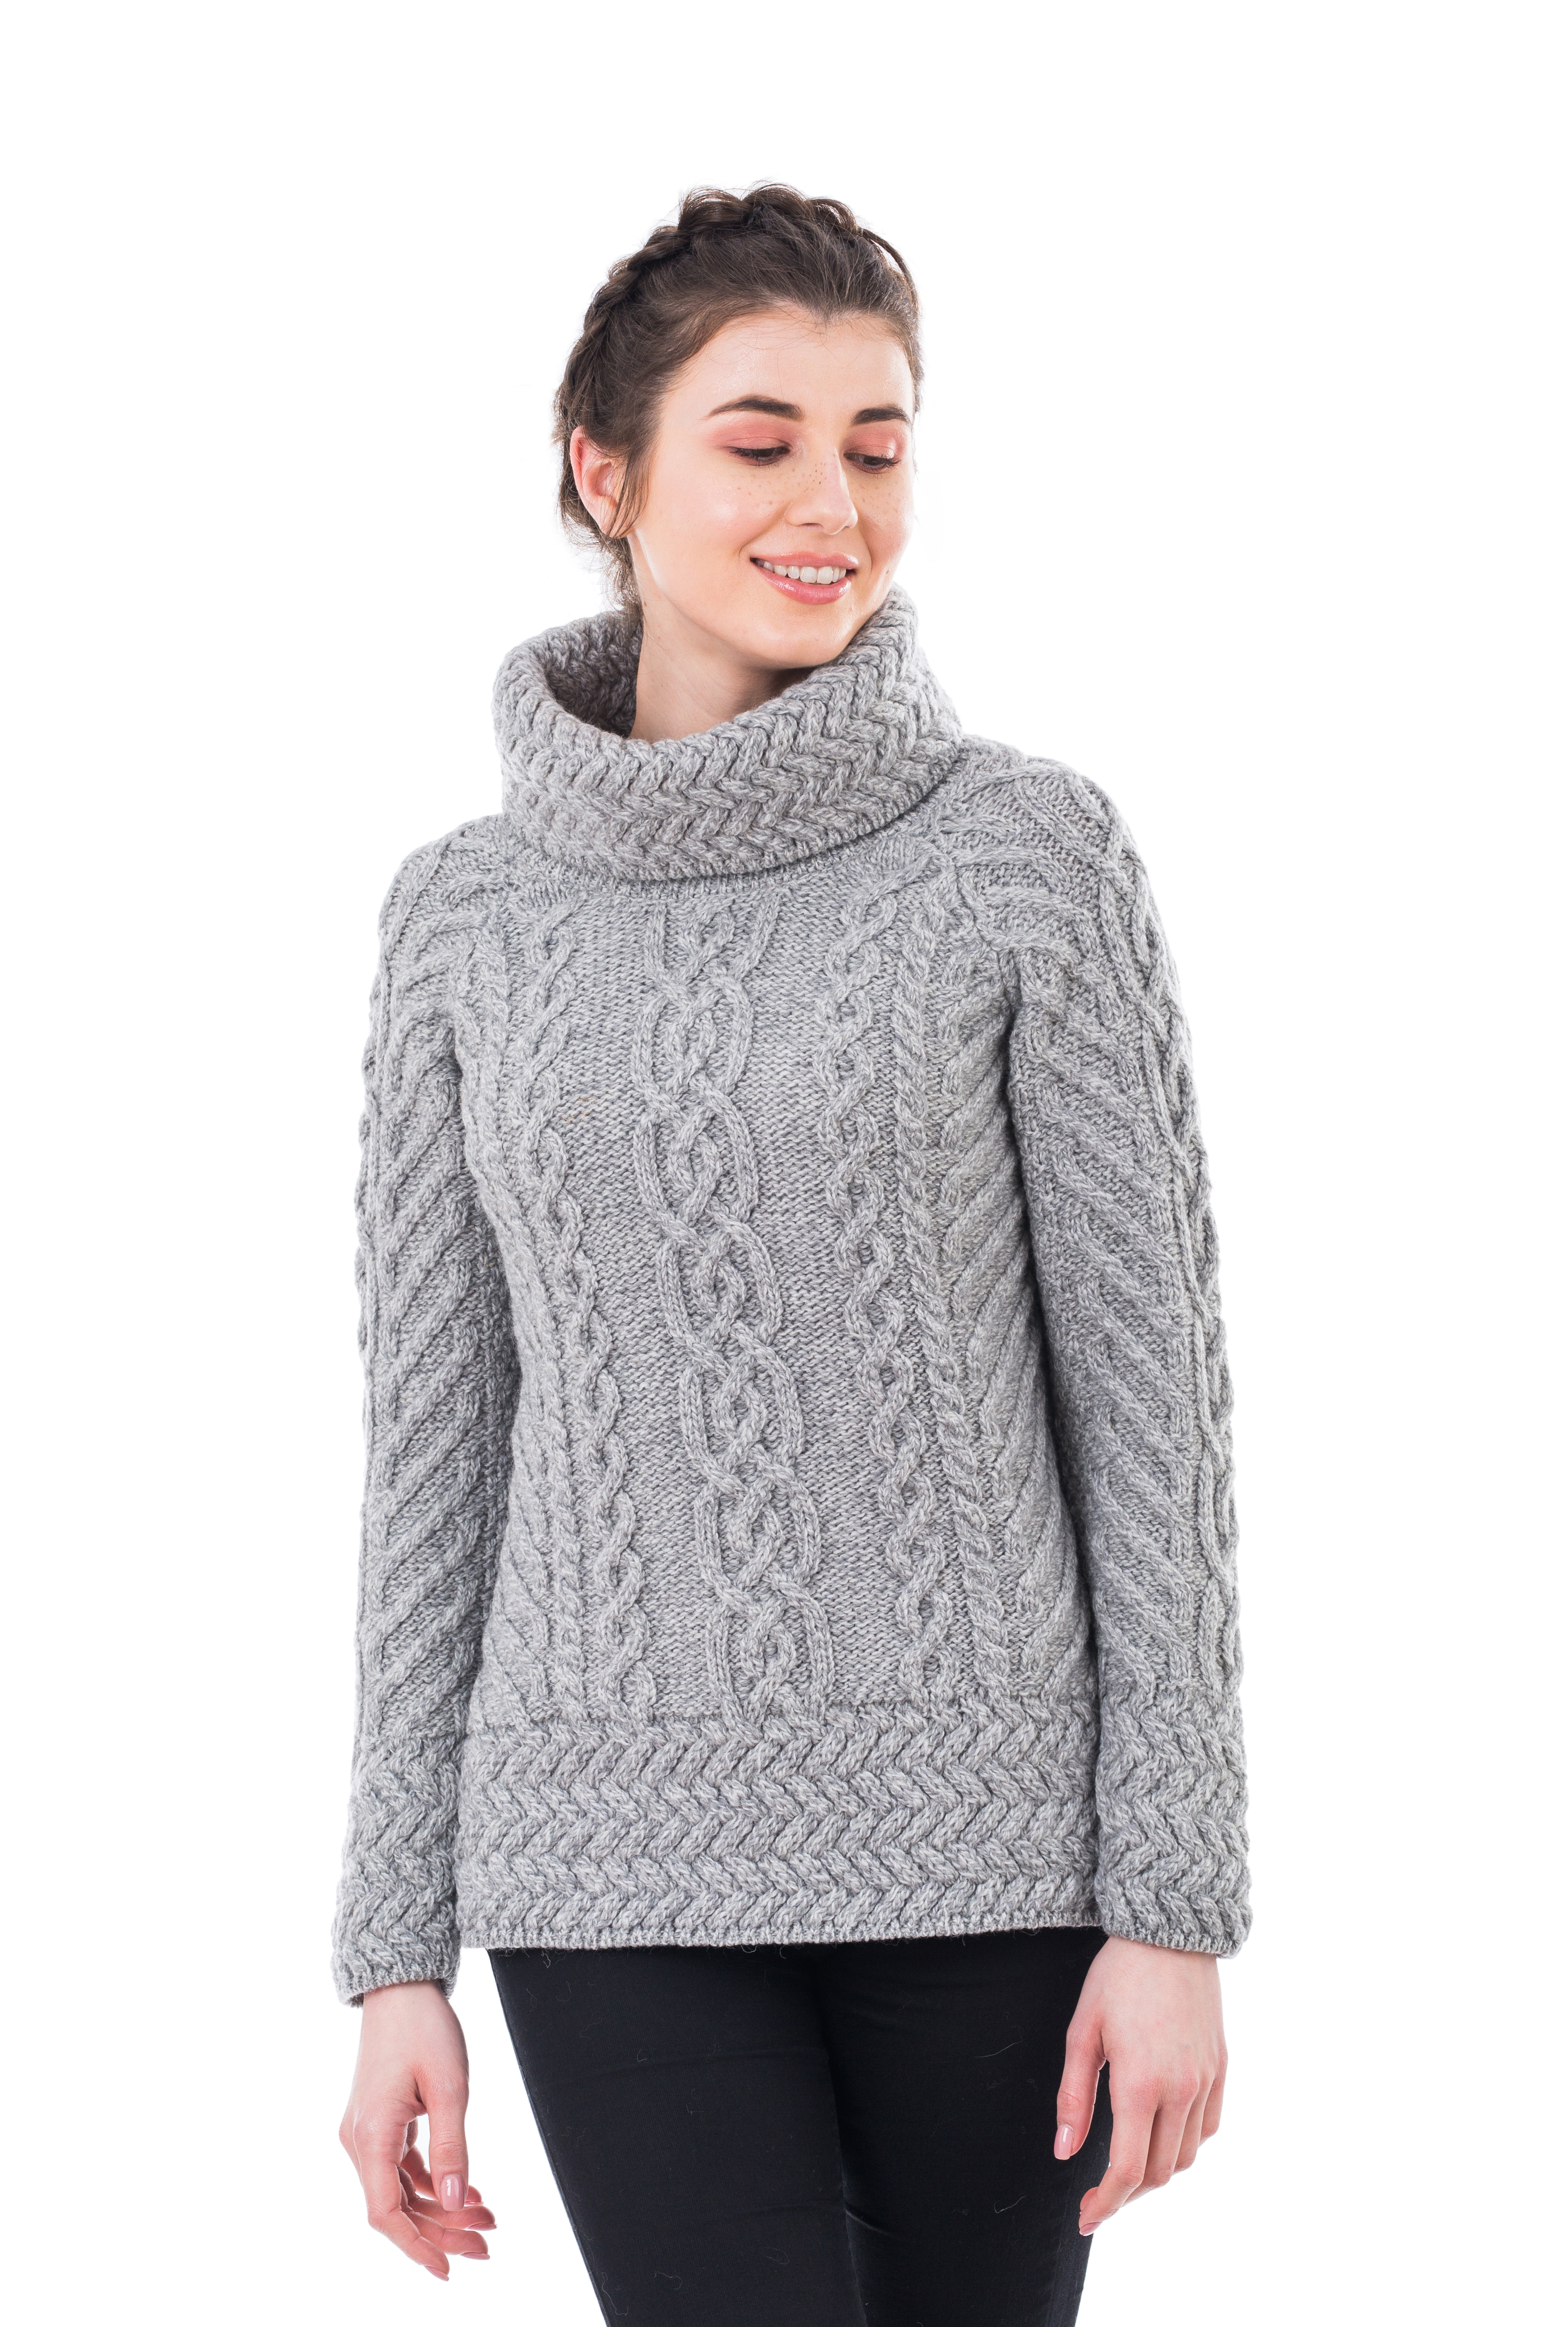 bed1d33e52b Ladies Cowl Neck Sweater - Dublin Gift Company